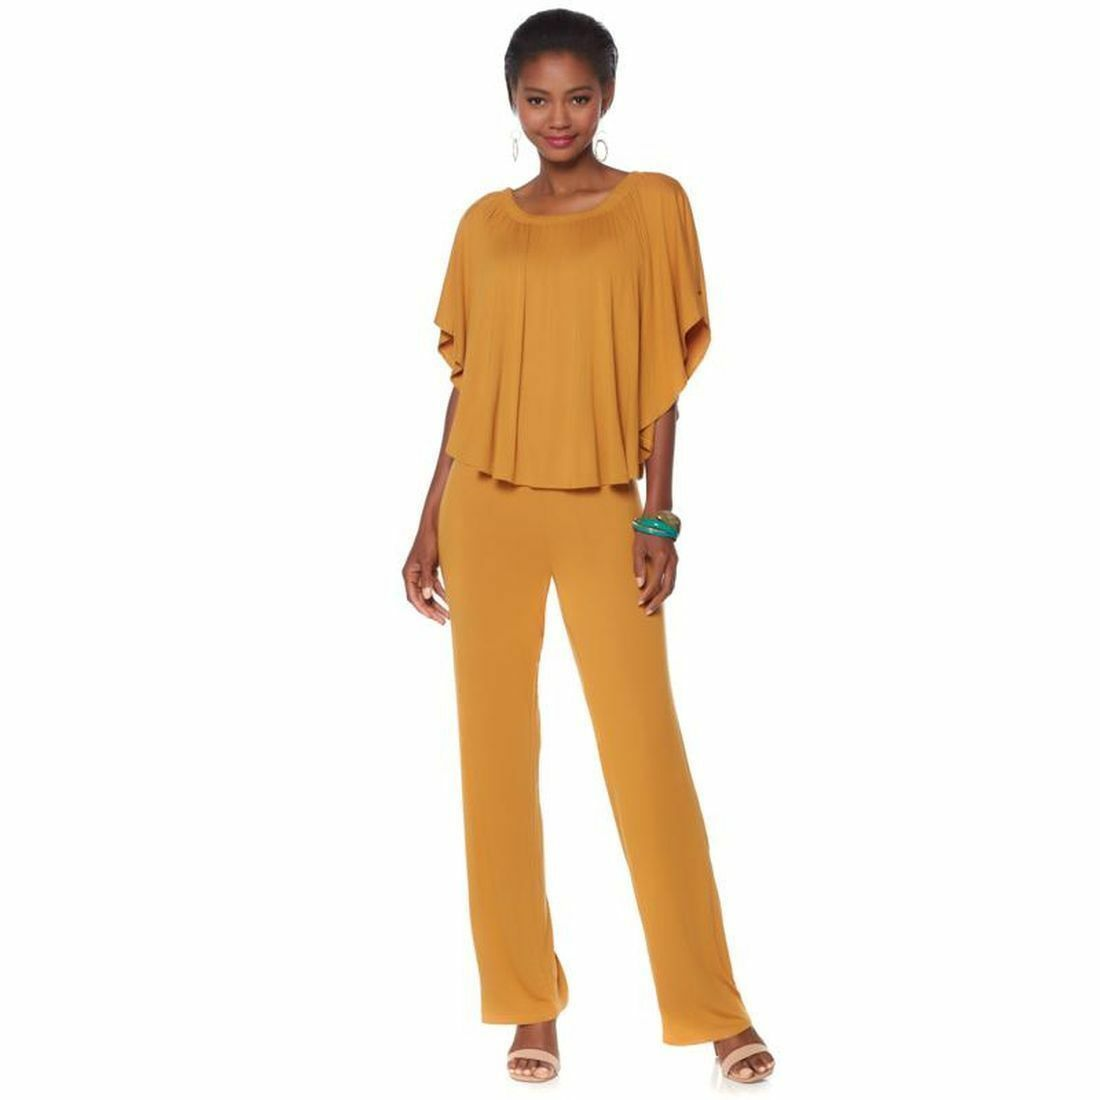 Antthony The golden Sun Off-Shoulder Jumpsuit stretch jersey gold 1Xplus size